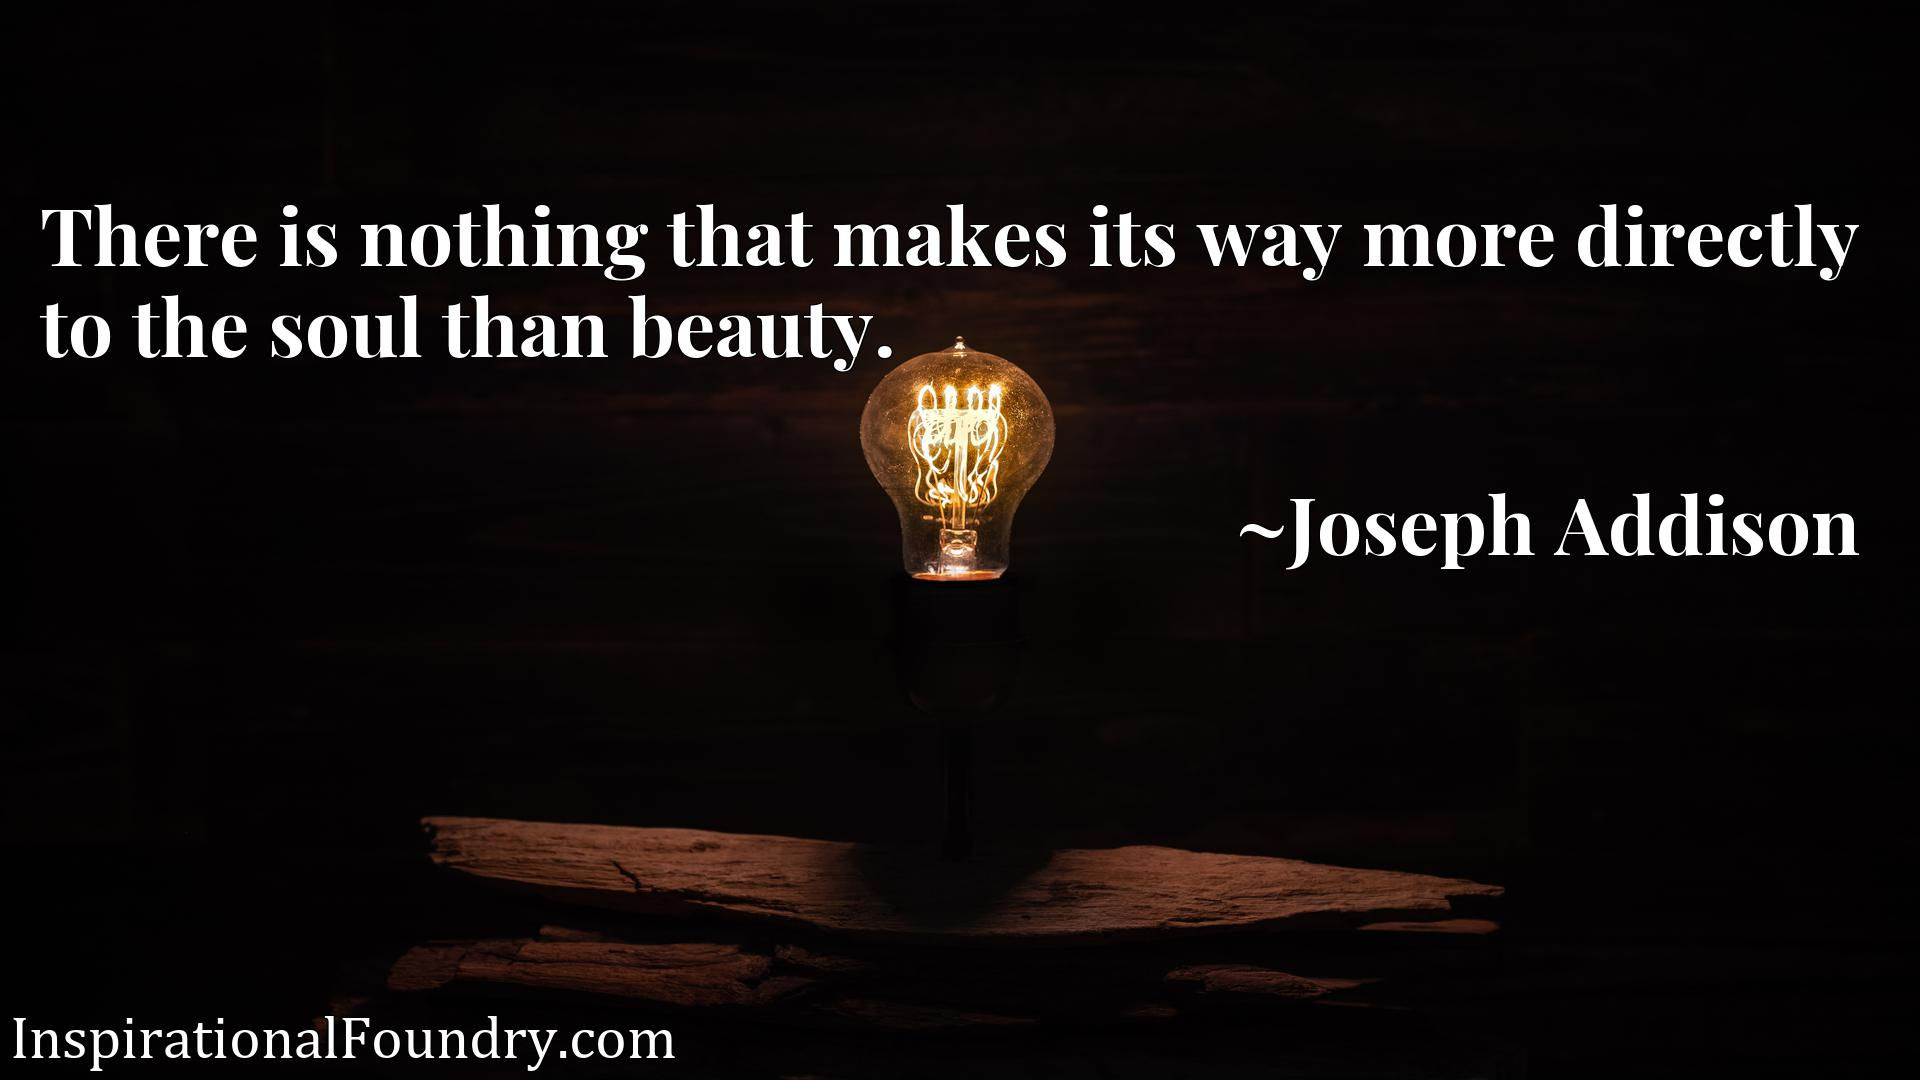 There is nothing that makes its way more directly to the soul than beauty.